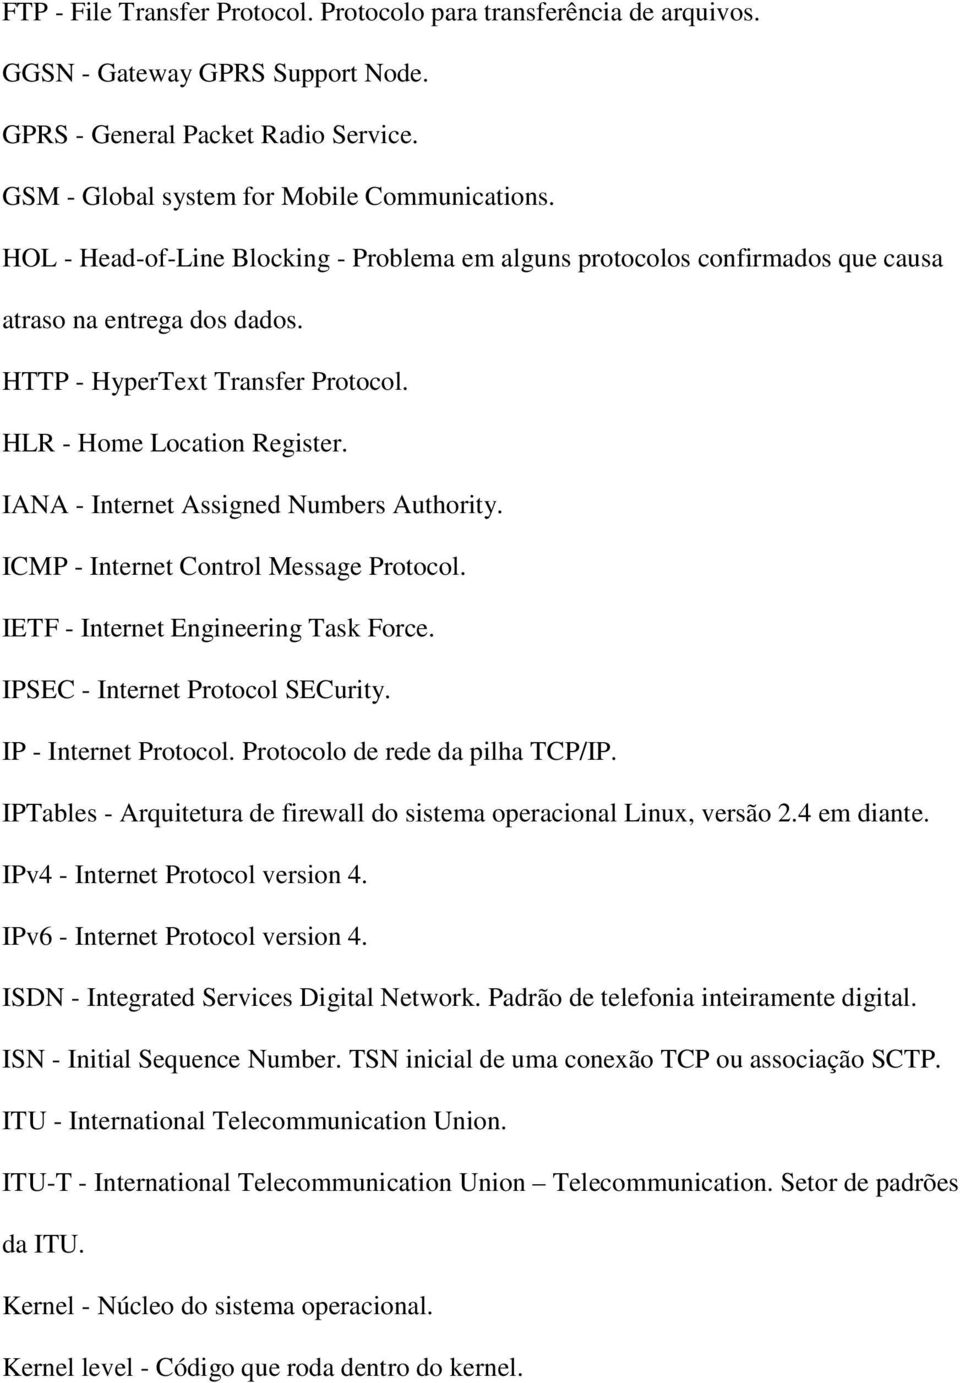 IANA - Internet Assigned Numbers Authority. ICMP - Internet Control Message Protocol. IETF - Internet Engineering Task Force. IPSEC - Internet Protocol SECurity. IP - Internet Protocol.